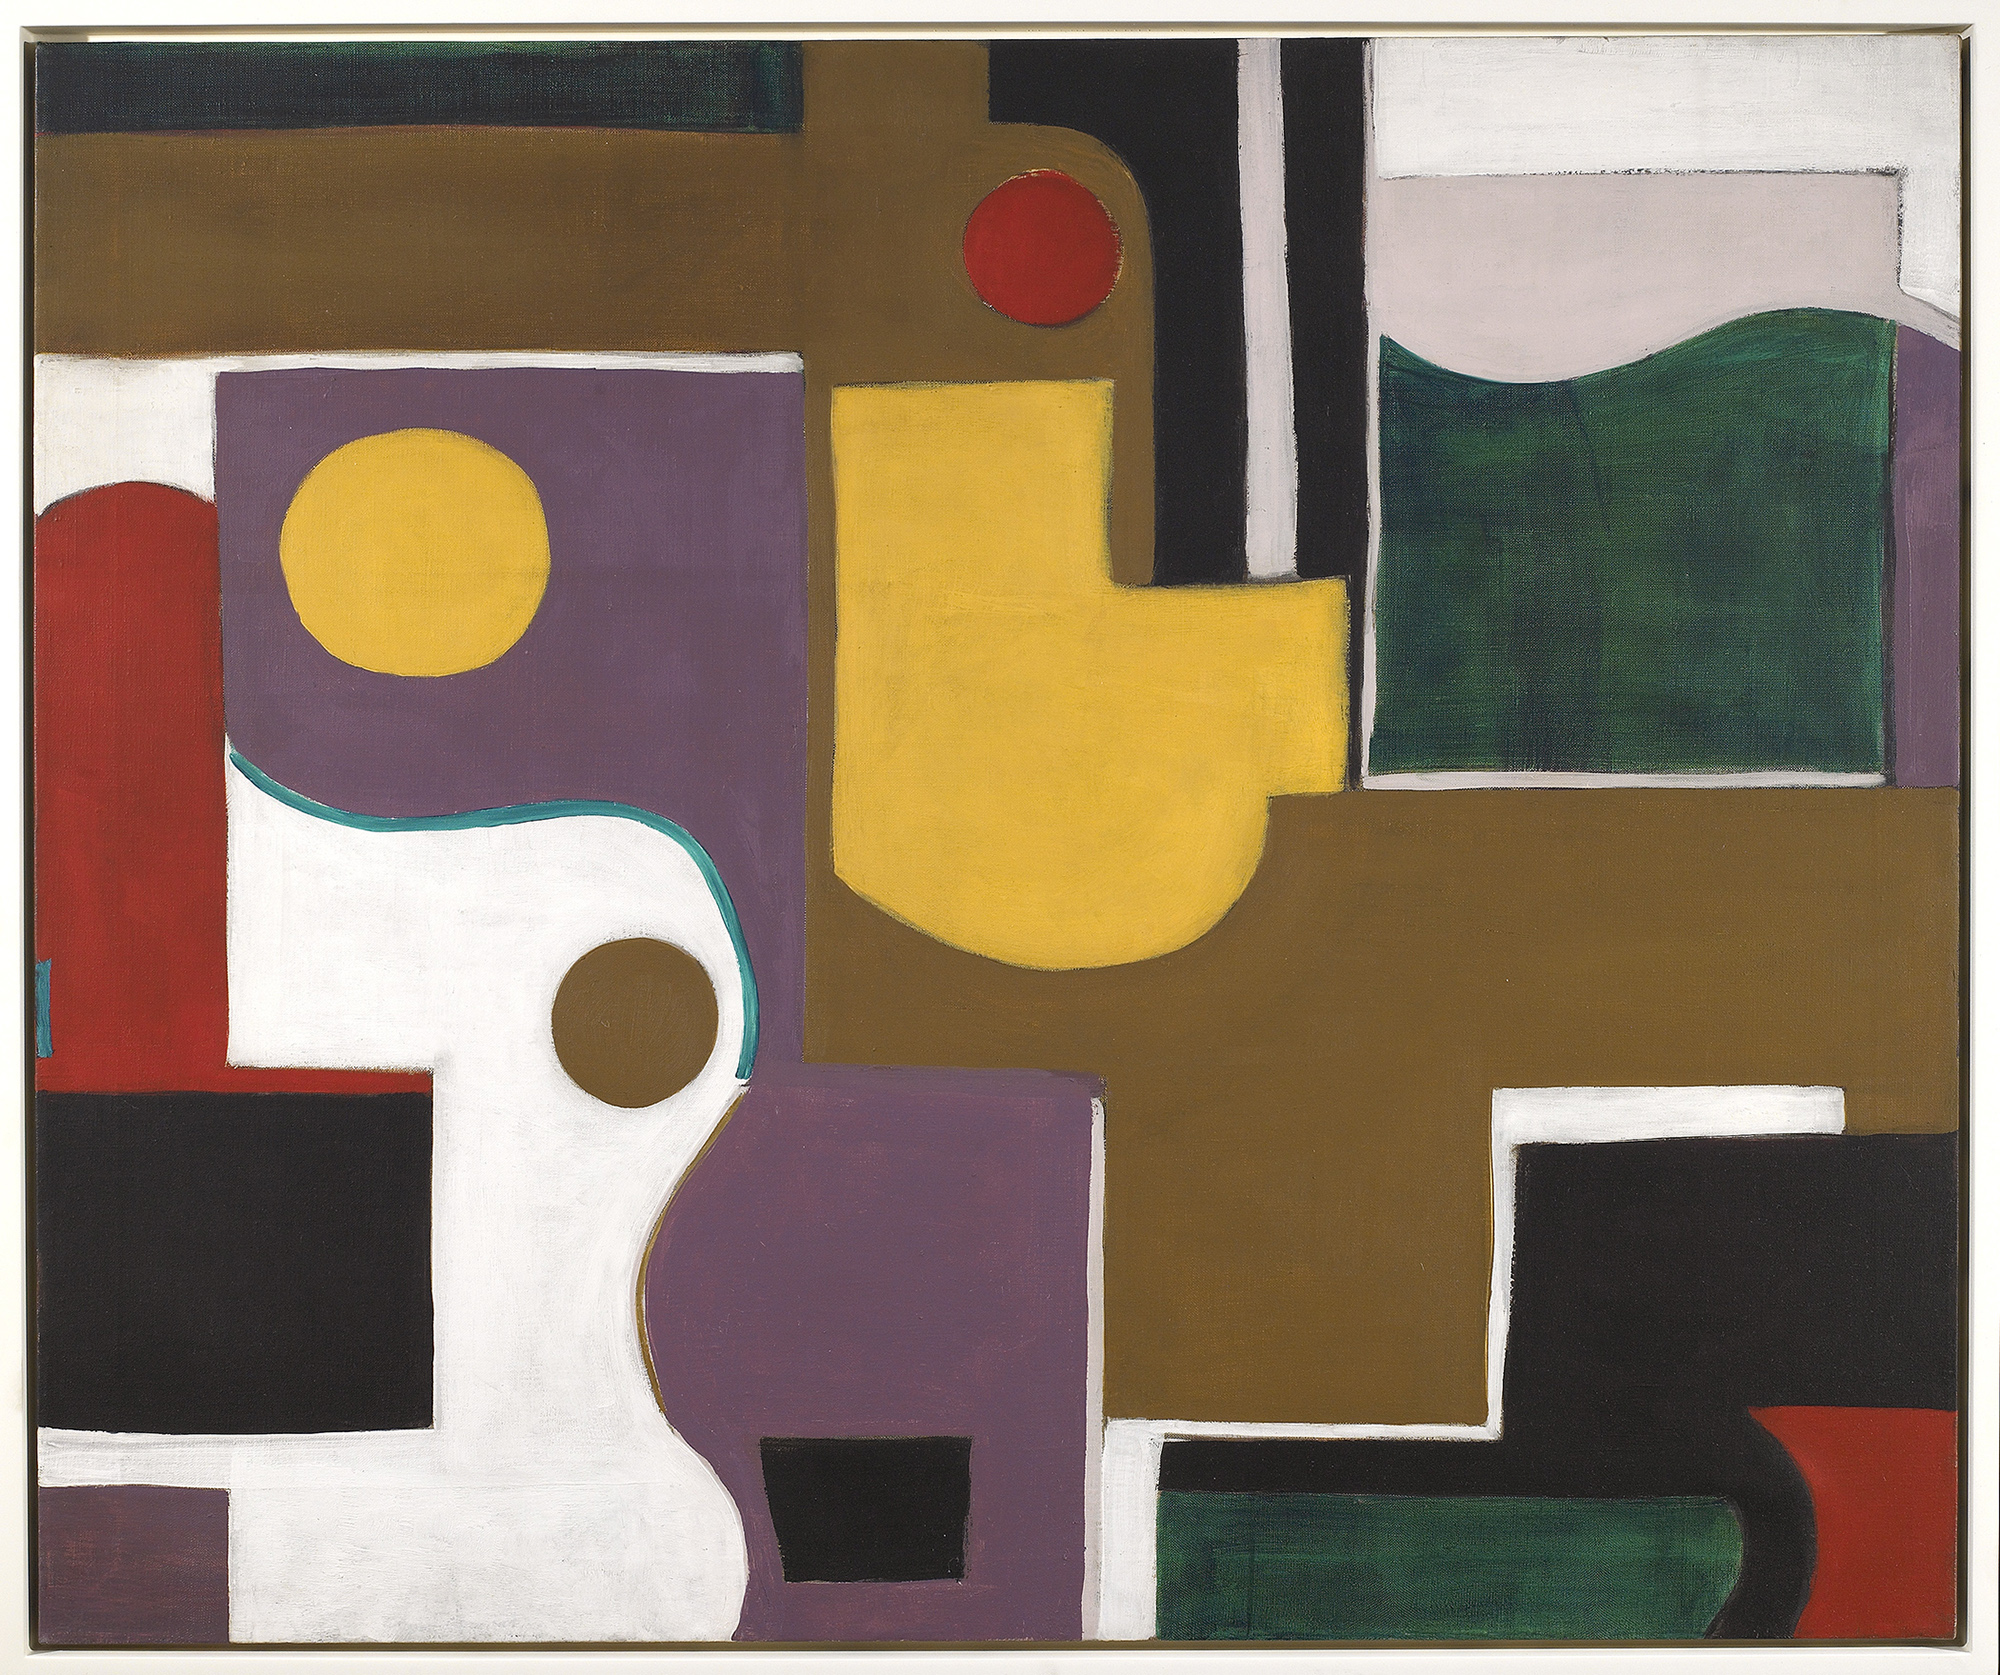 Studio,   Oil on canvas, 1950s, 30 x 36 inches